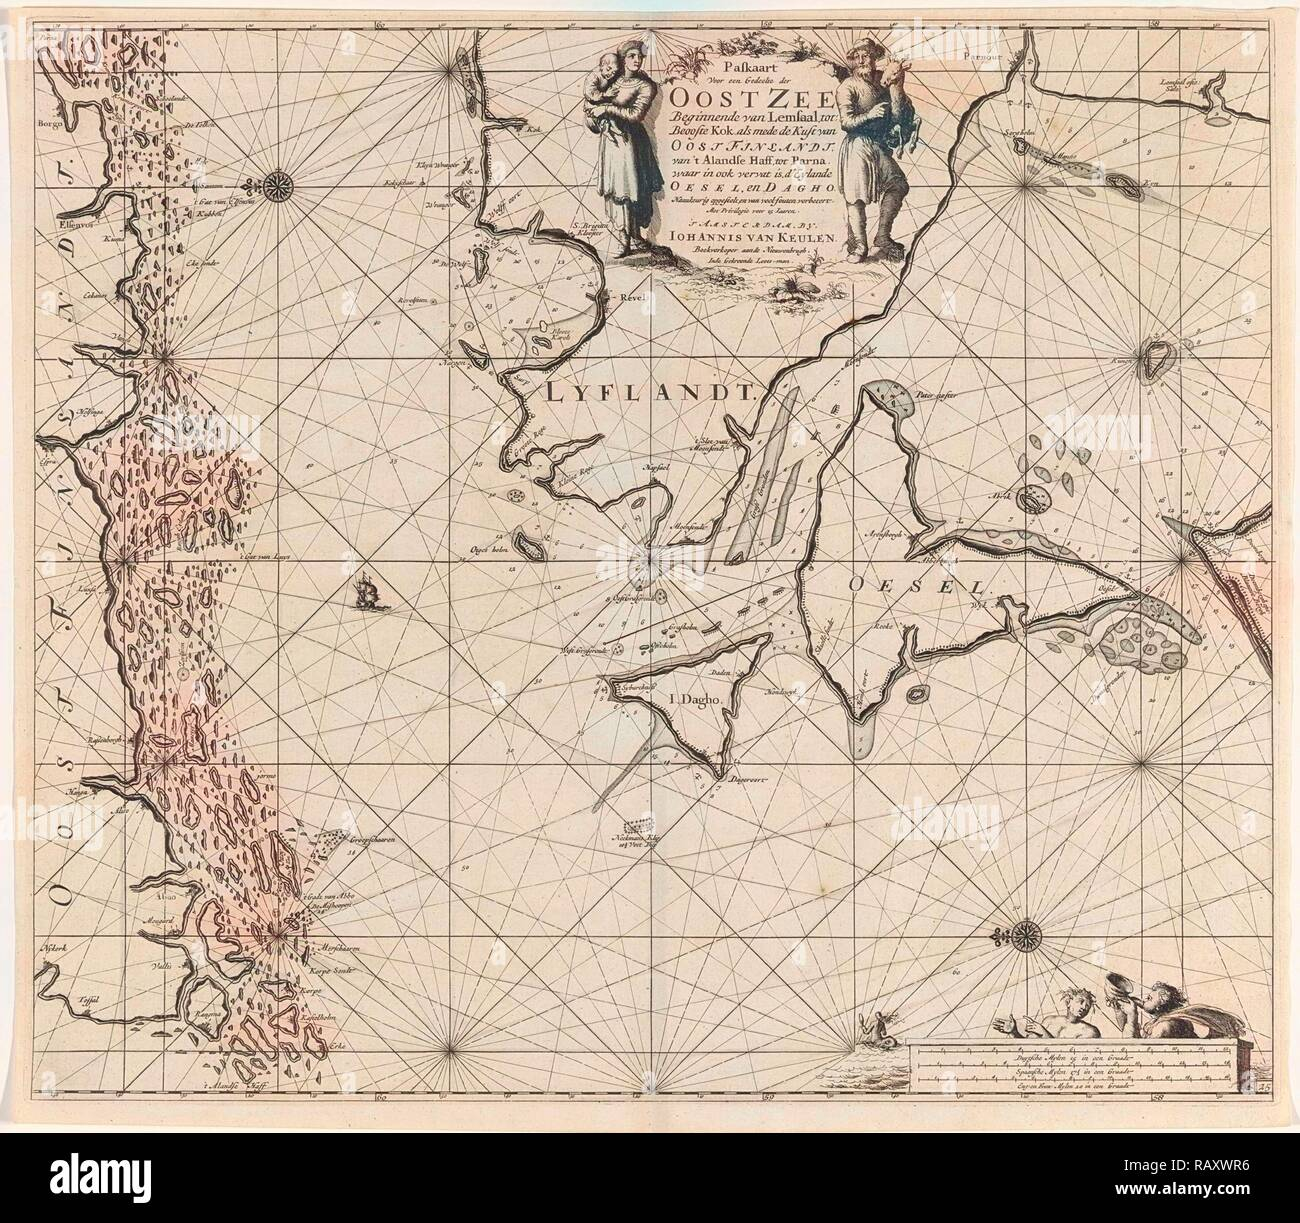 Sea chart of the mouth of the Gulf of Finland in the Baltic Sea, Jan Luyken, Johannes van Keulen (I), unknown, 1681 reimagined - Stock Image